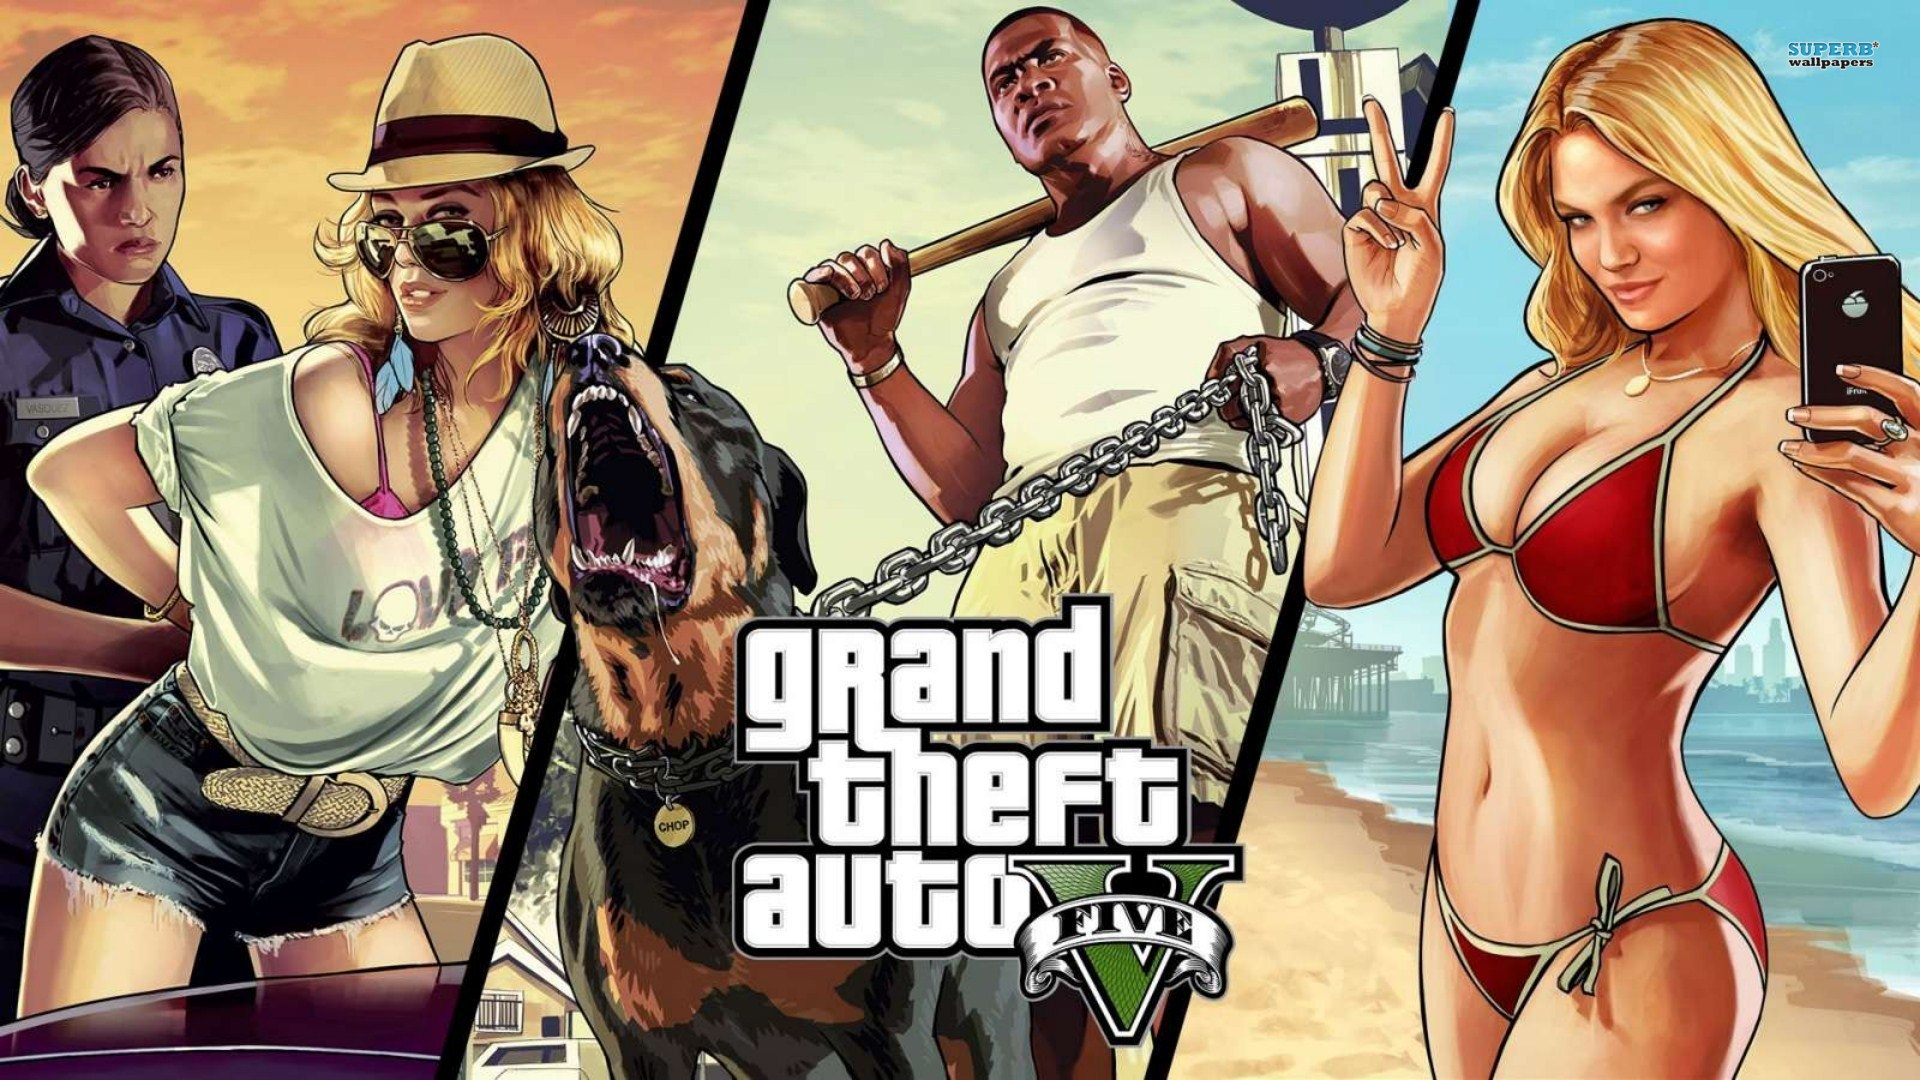 Download image gta5 pc android iphone and ipad wallpapers and -  Gta 5 Wallpaper